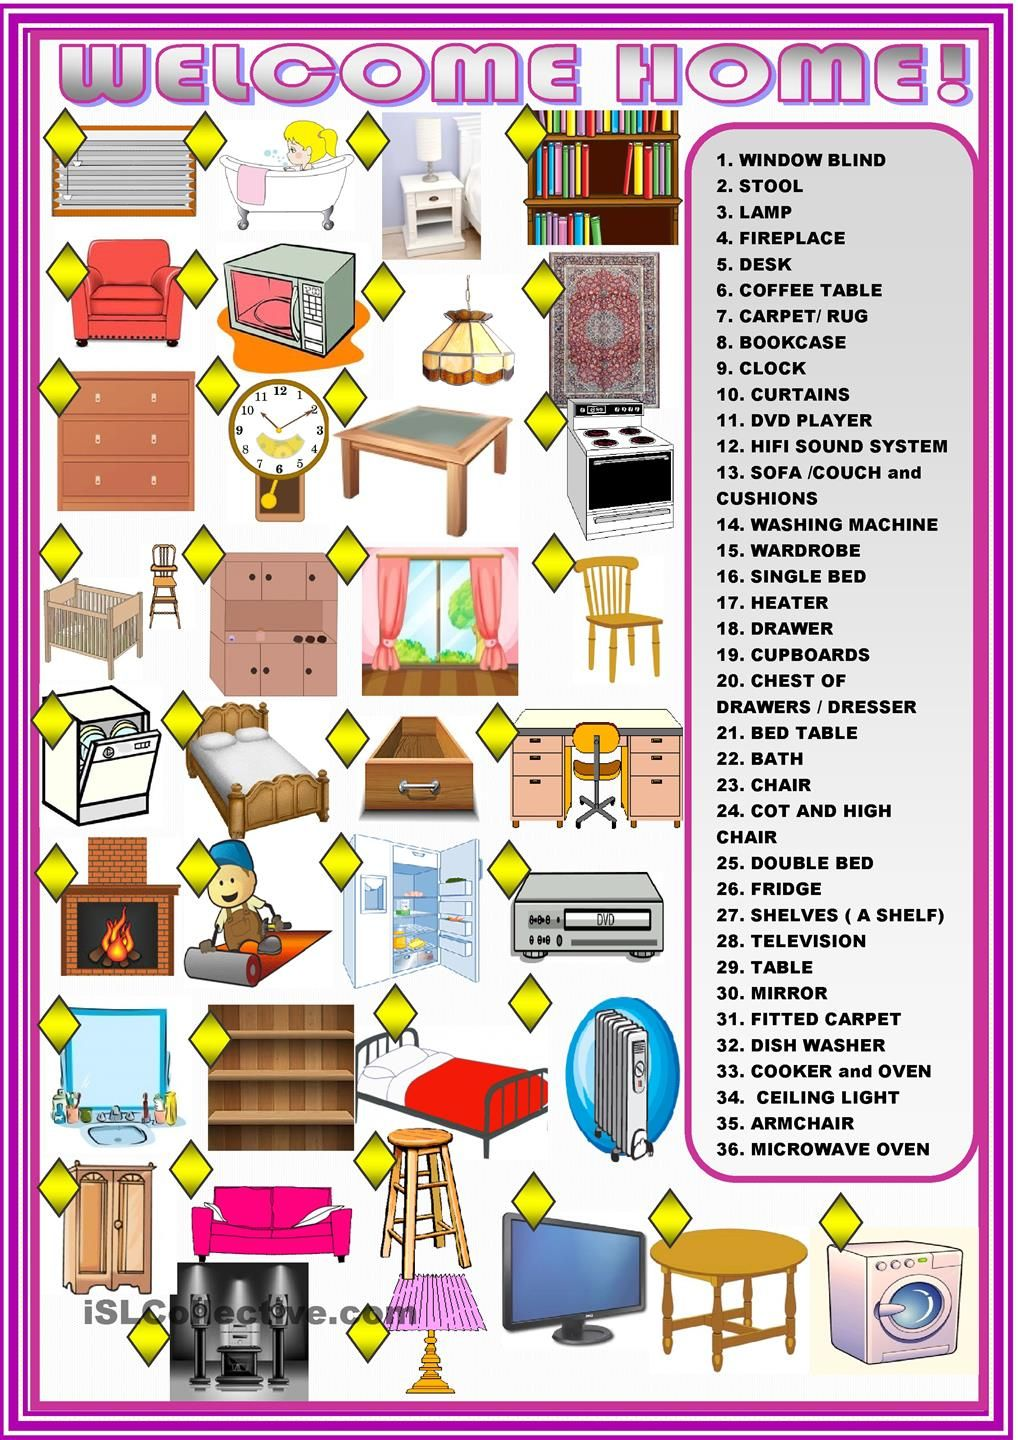 Welcome Home Furniture Matching Activity English Vocabulary  # Muebles En Ingles